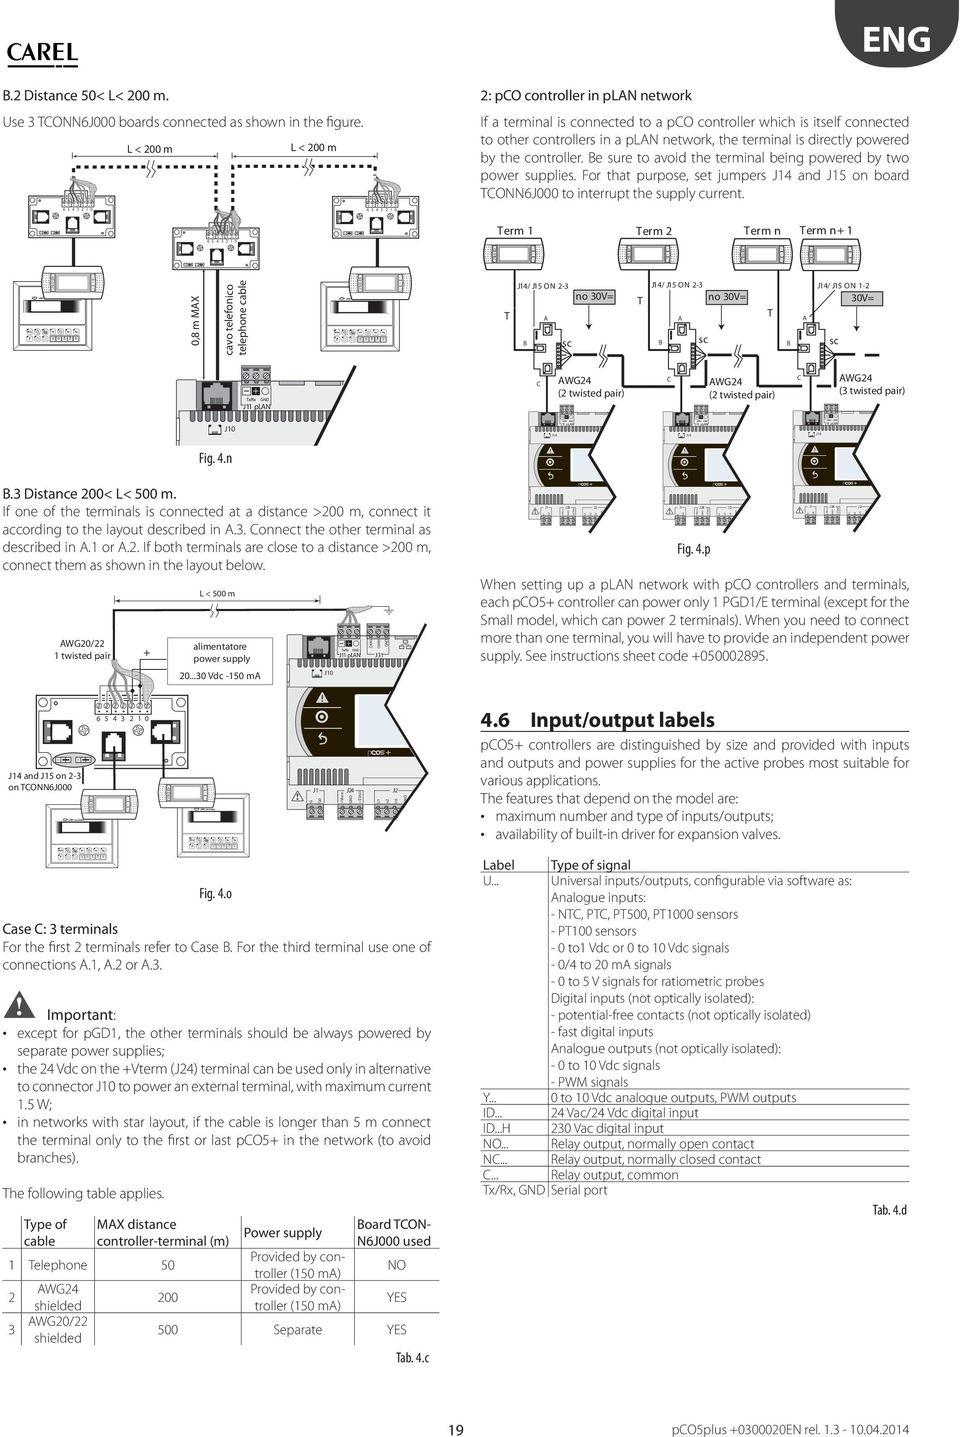 Pco5 Programmable Controller User Manual No Power Signal Cables Diagram Also Wiring For 9 Pin To Rj11 Rs232 Likewise L 200 M 6 5 4 3 2 1 0